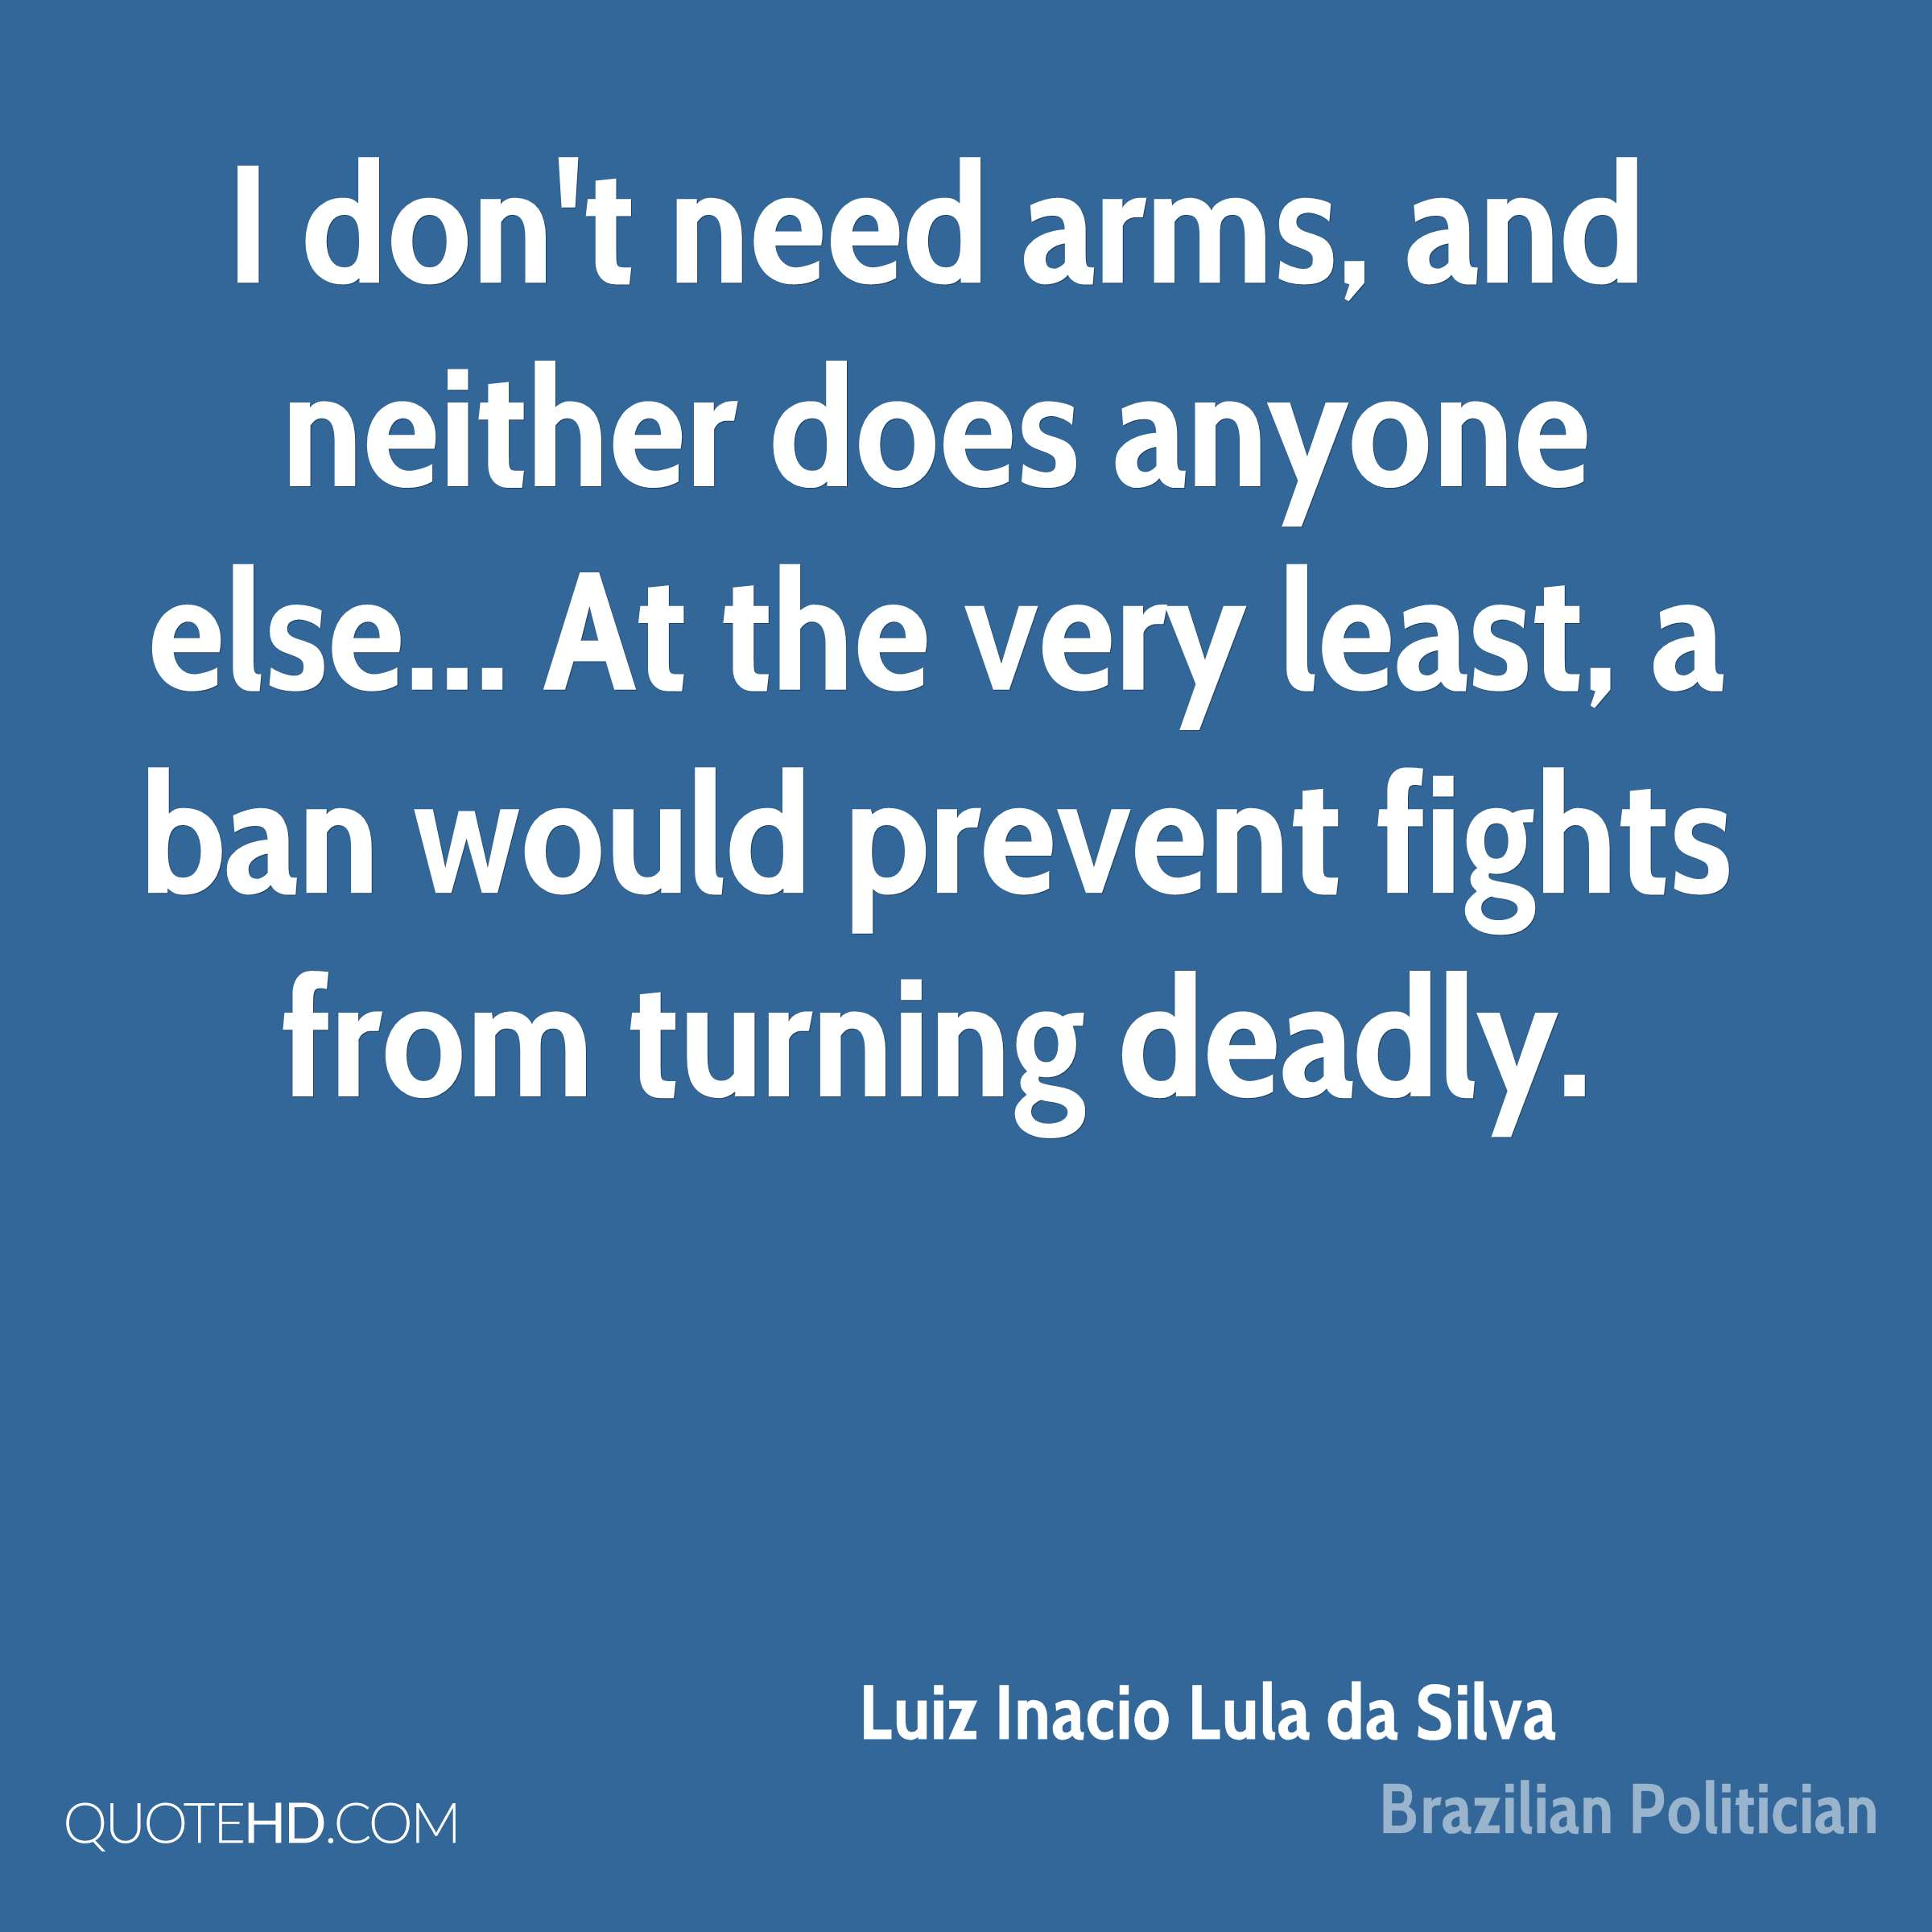 I don't need arms, and neither does anyone else... At the very least, a ban would prevent fights from turning deadly.